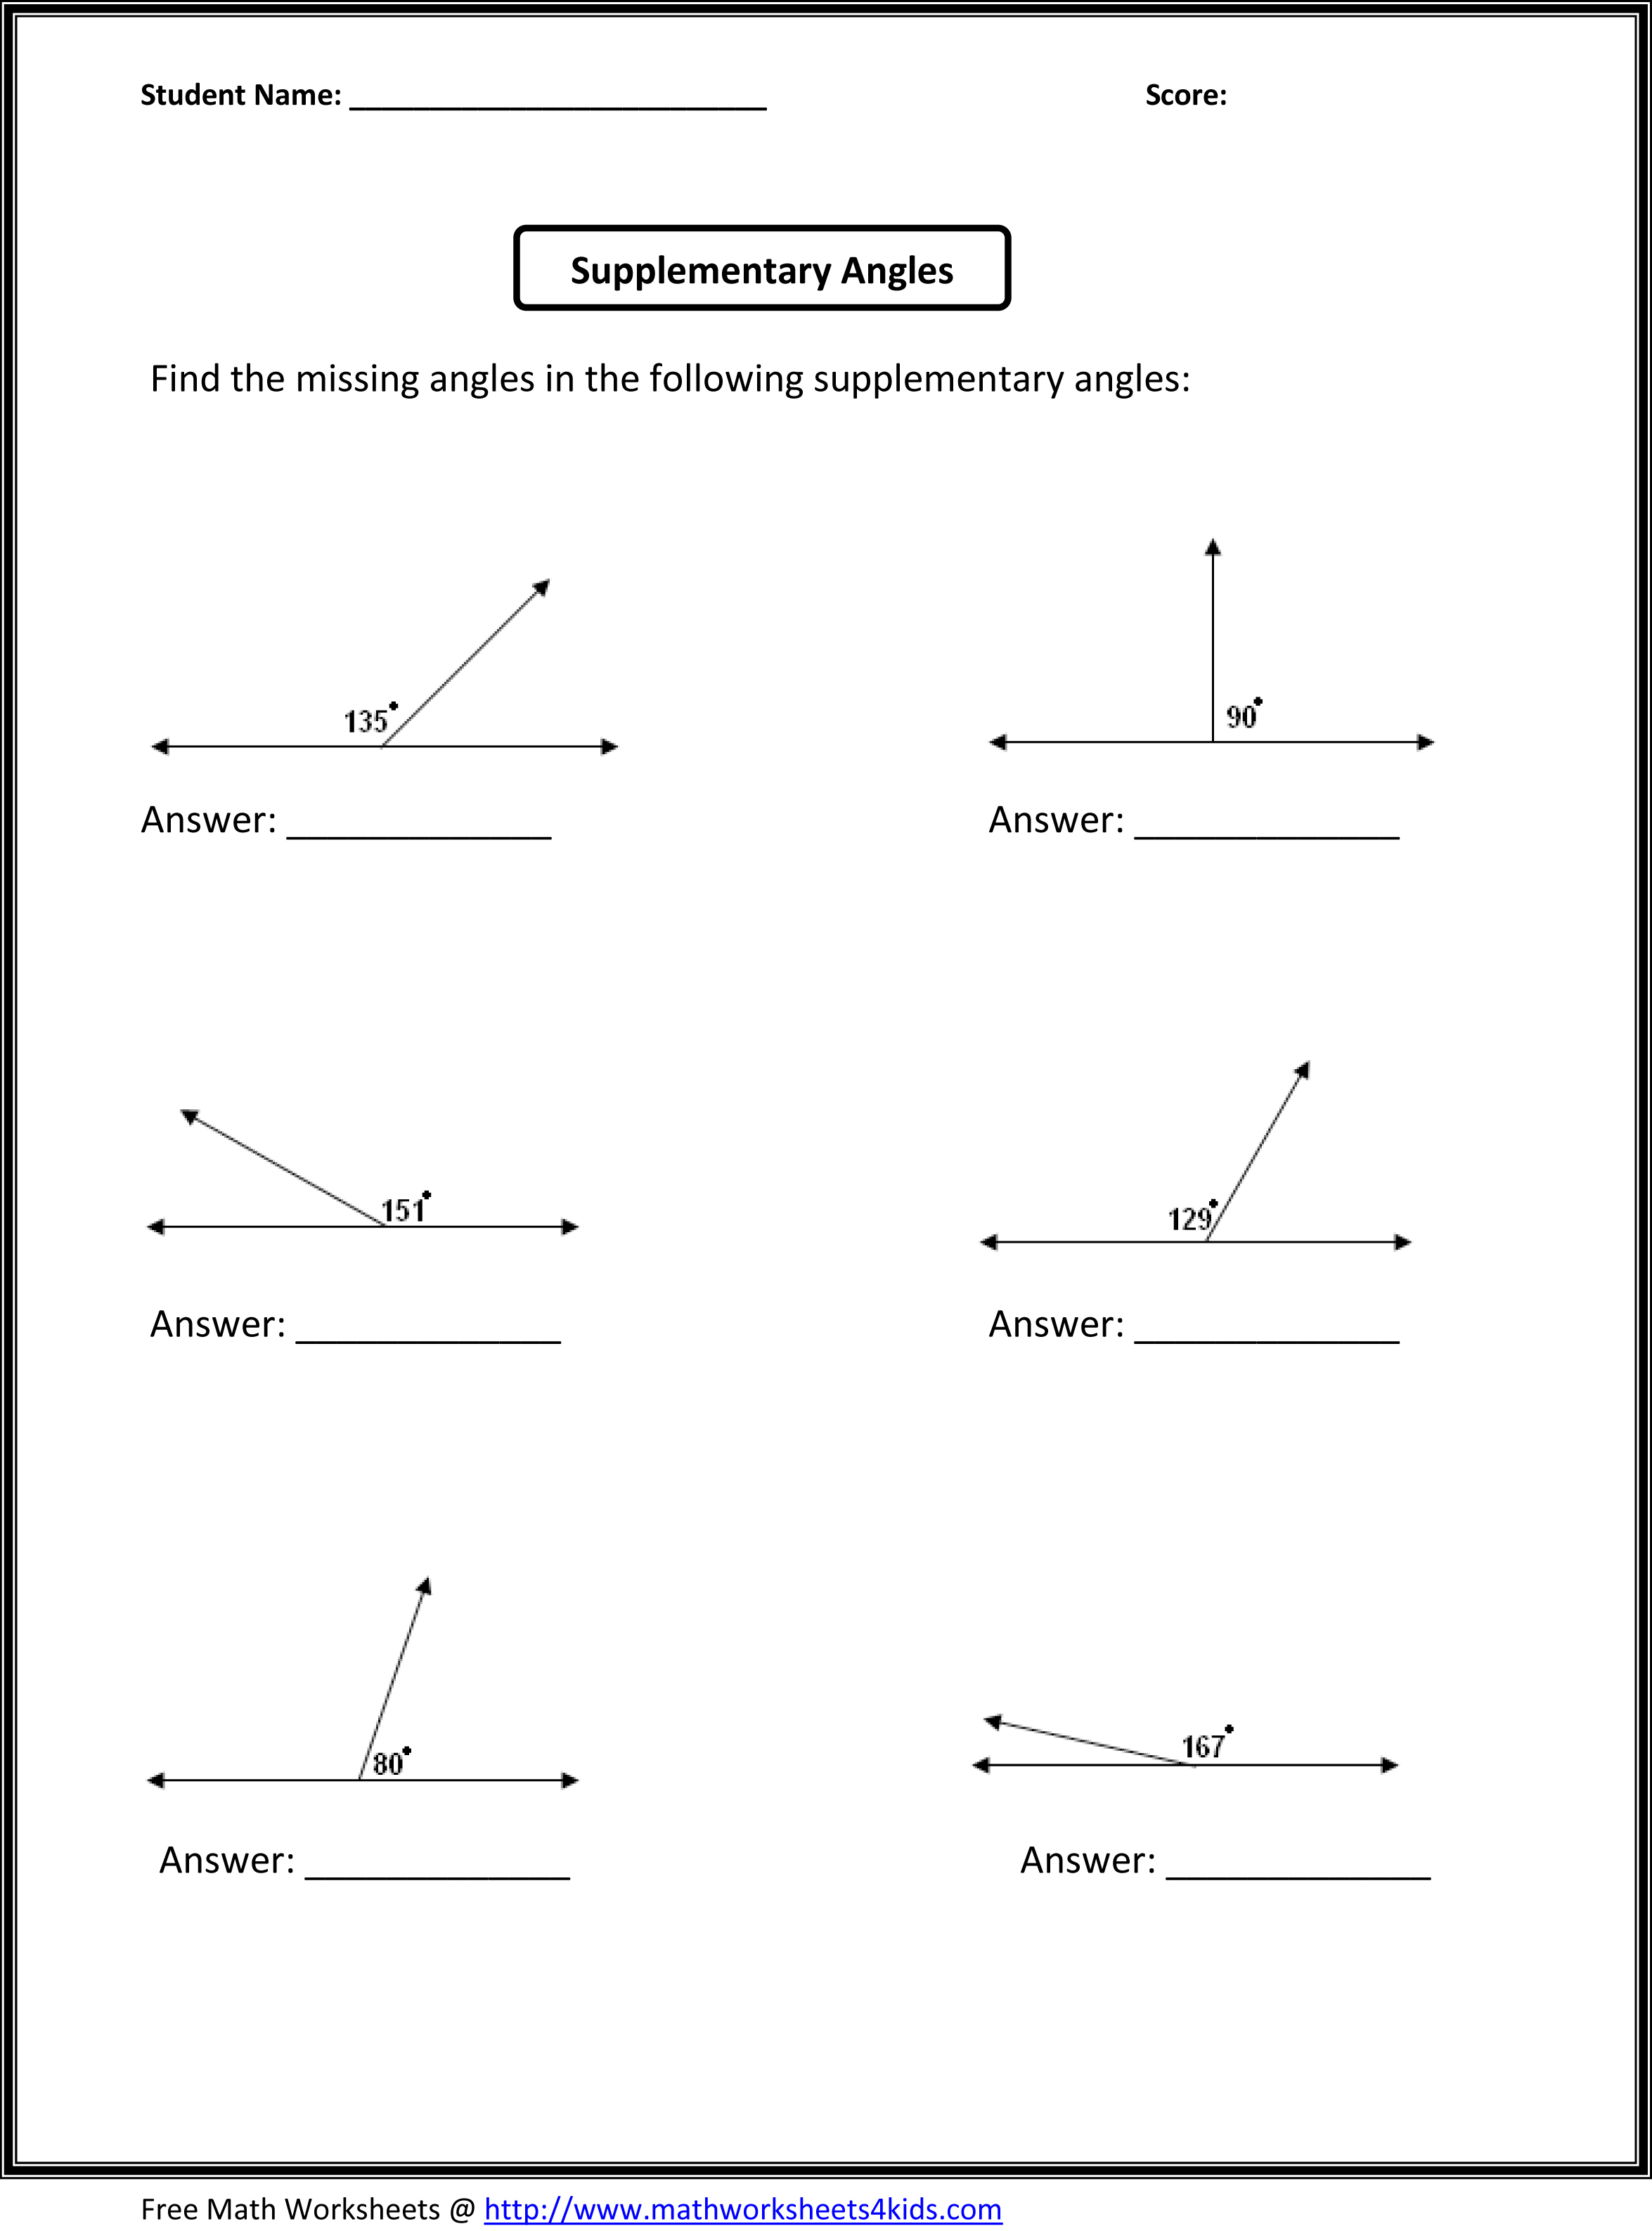 17 Best Images Of Geometry Angles Worksheet 4th Grade